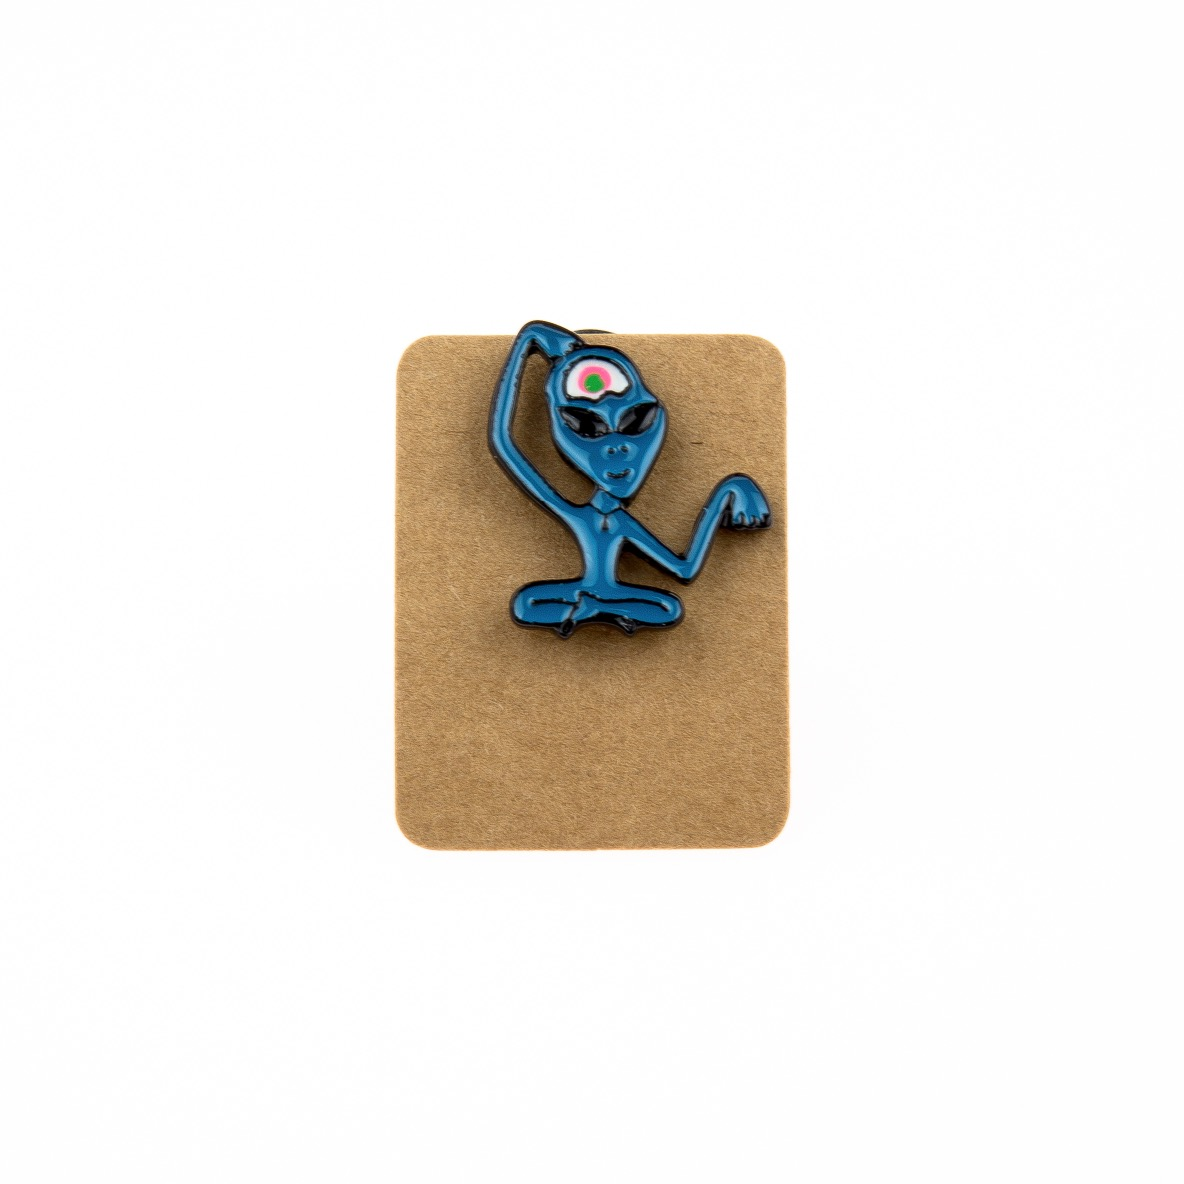 Metal Blue Alien Third Eye Enamel Pin Badge